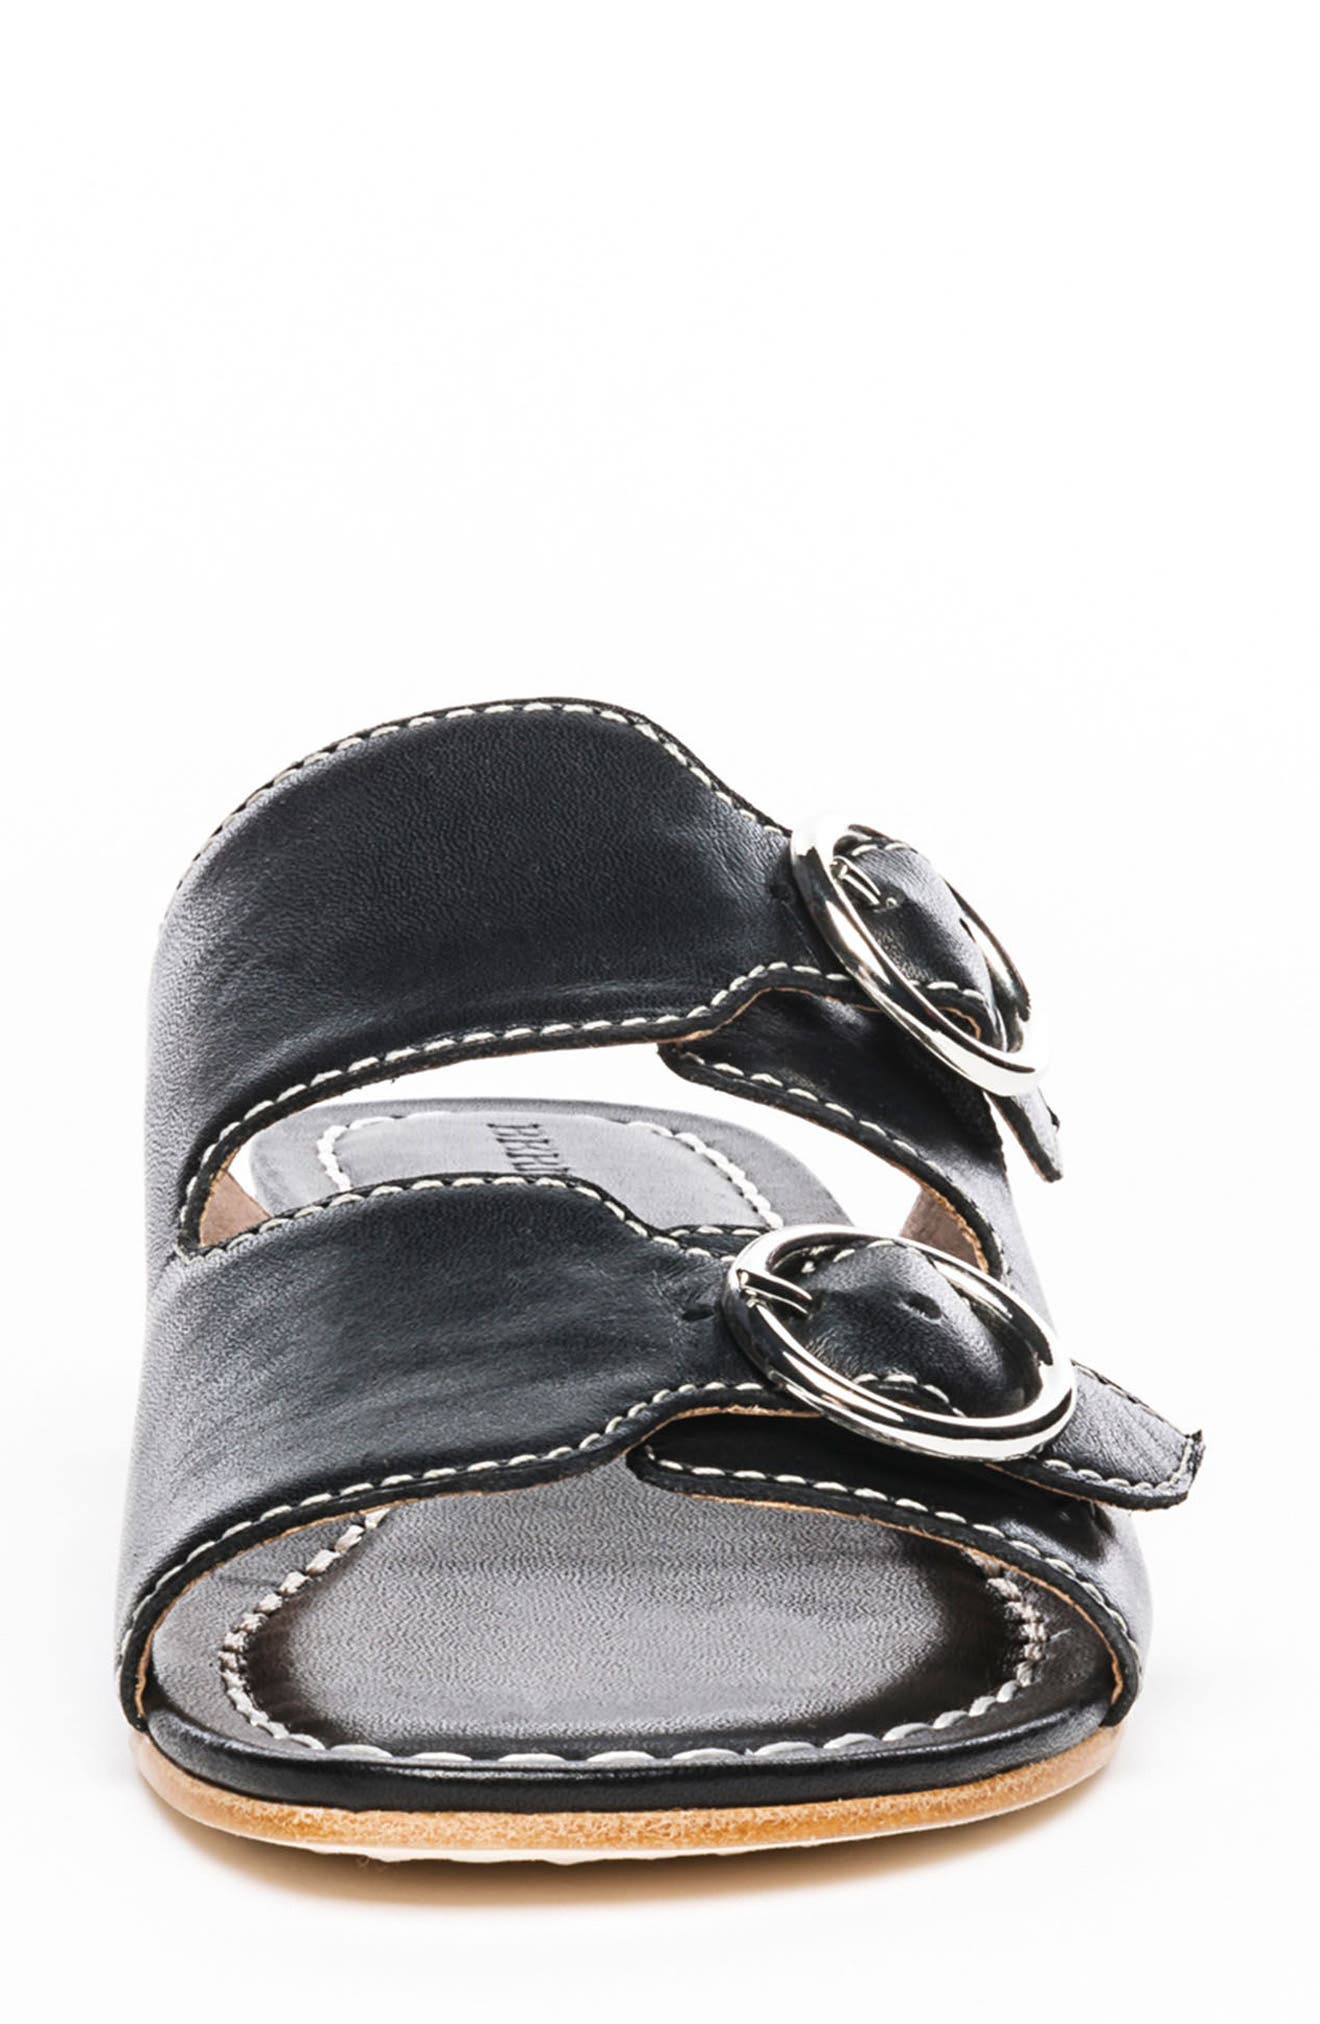 Bernardo Tobi Slide Sandal,                             Alternate thumbnail 4, color,                             Black Leather